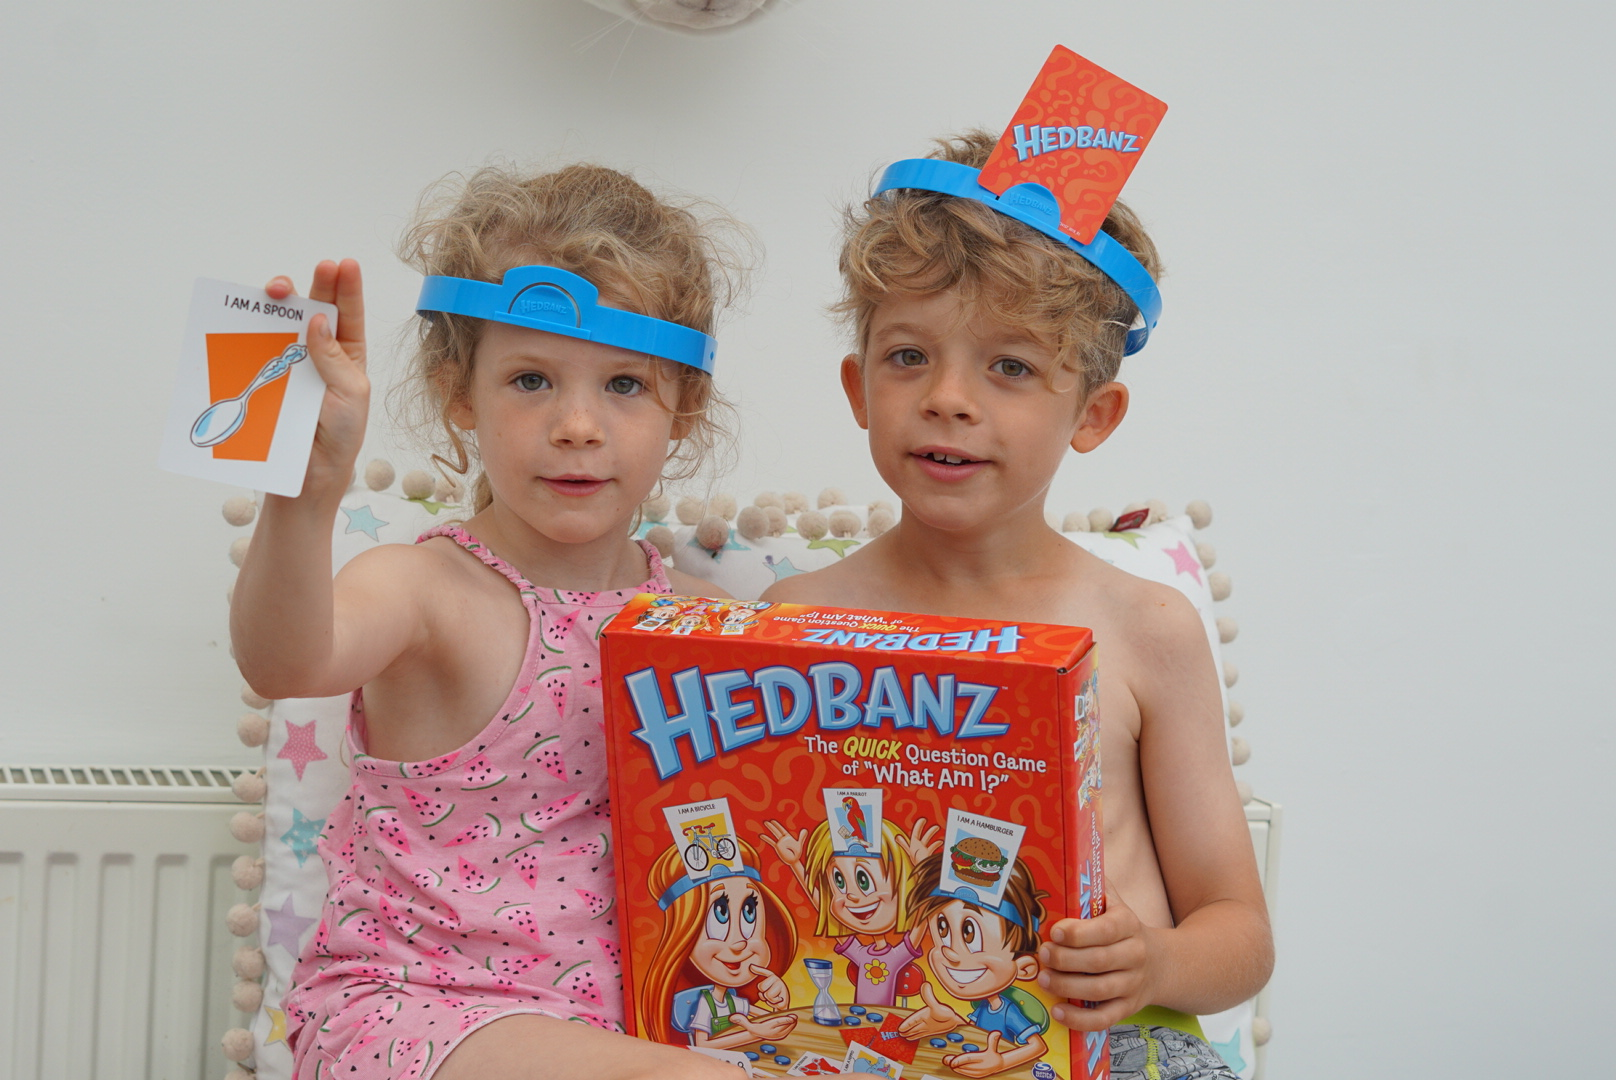 A fun family quick question game: Hedbanz